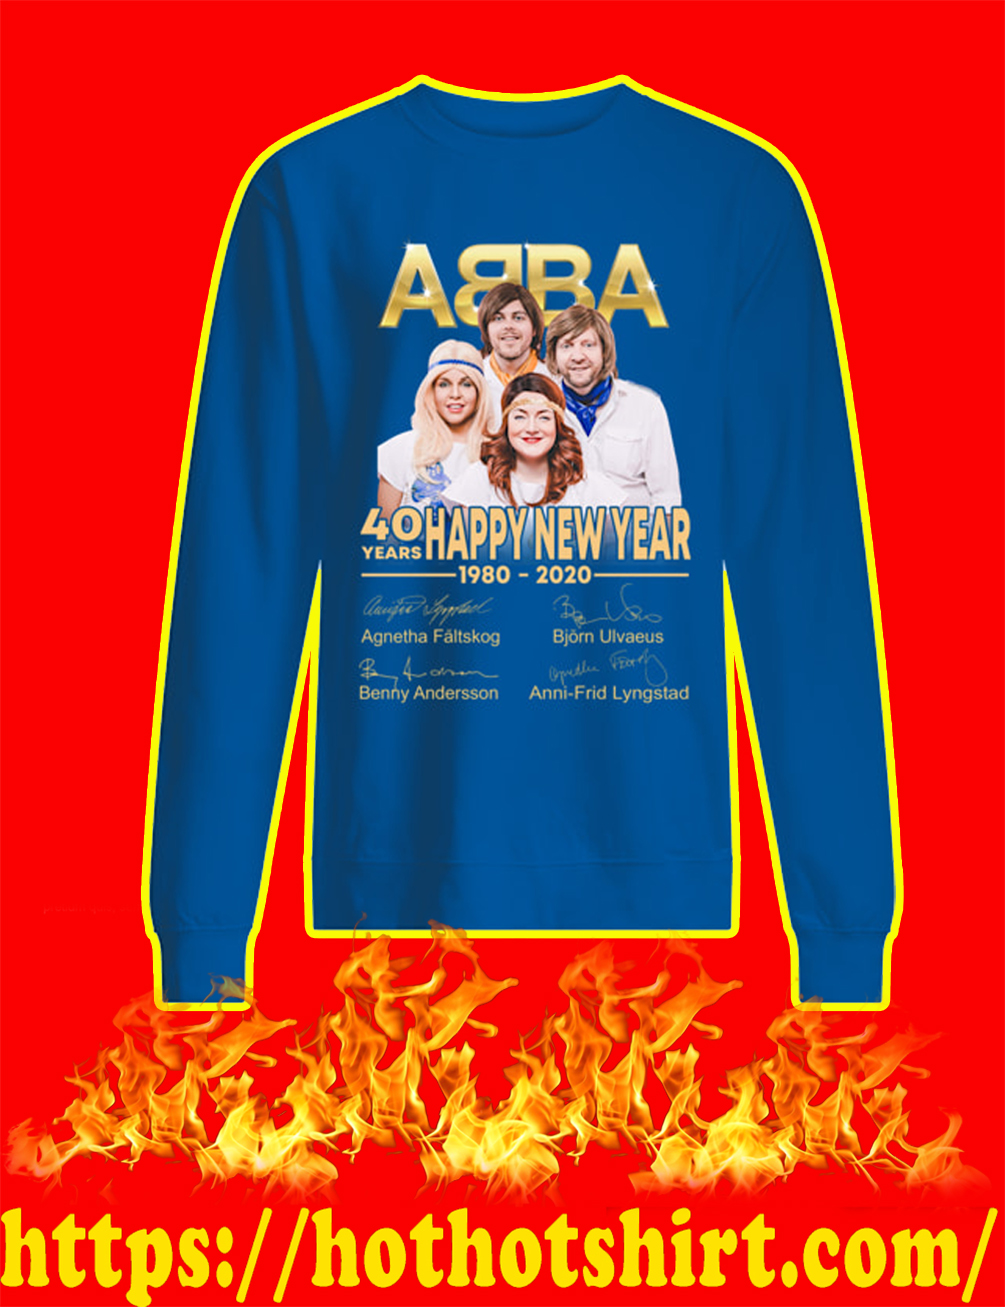 ABBA 40 Years Happy New Year 1980 2020 sweatshirt